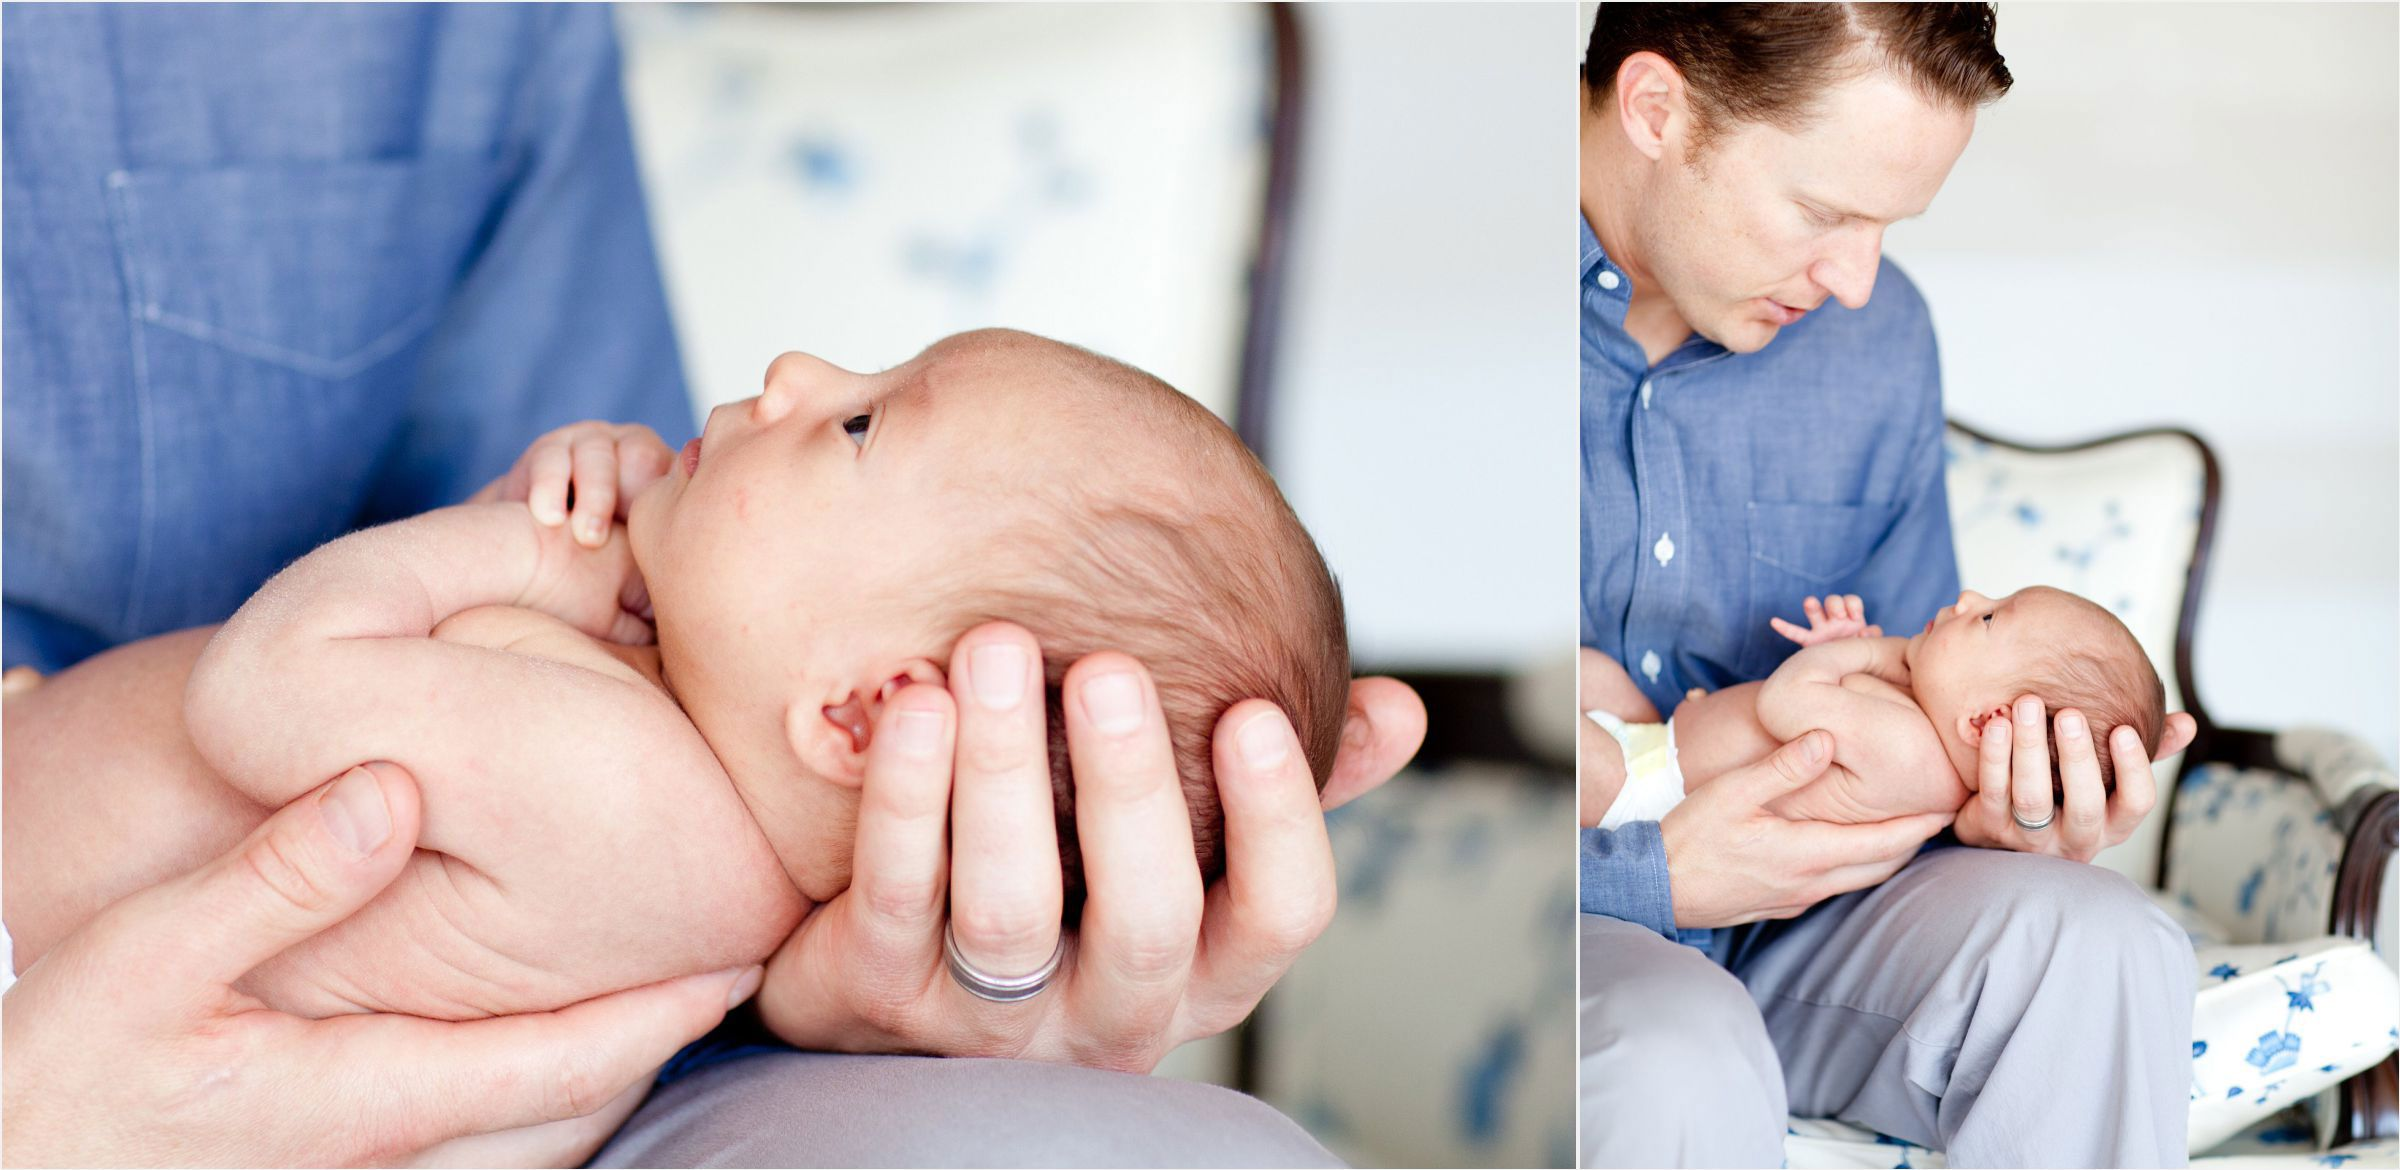 Treasured-stars-captured-between-Father-and-son-at-newborn-photoshoot-0005